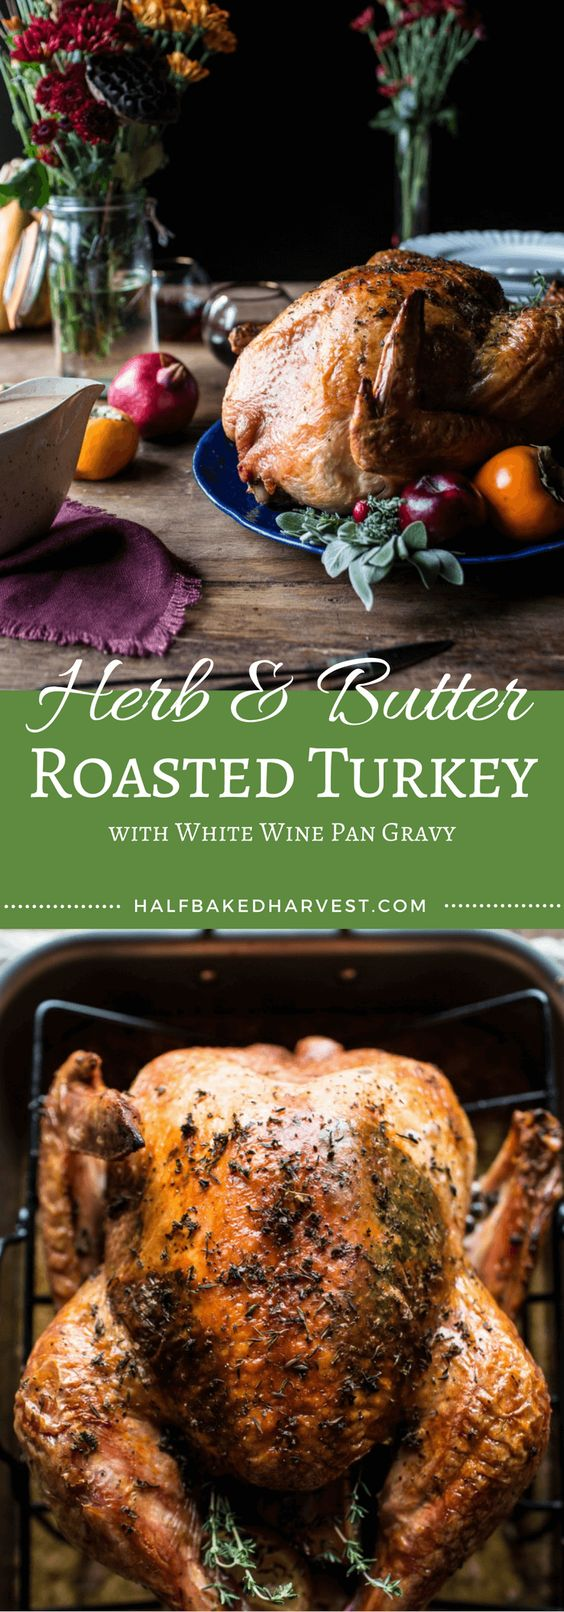 Thanksgiving turkey recipes: Herb And Butter Roasted Turkey